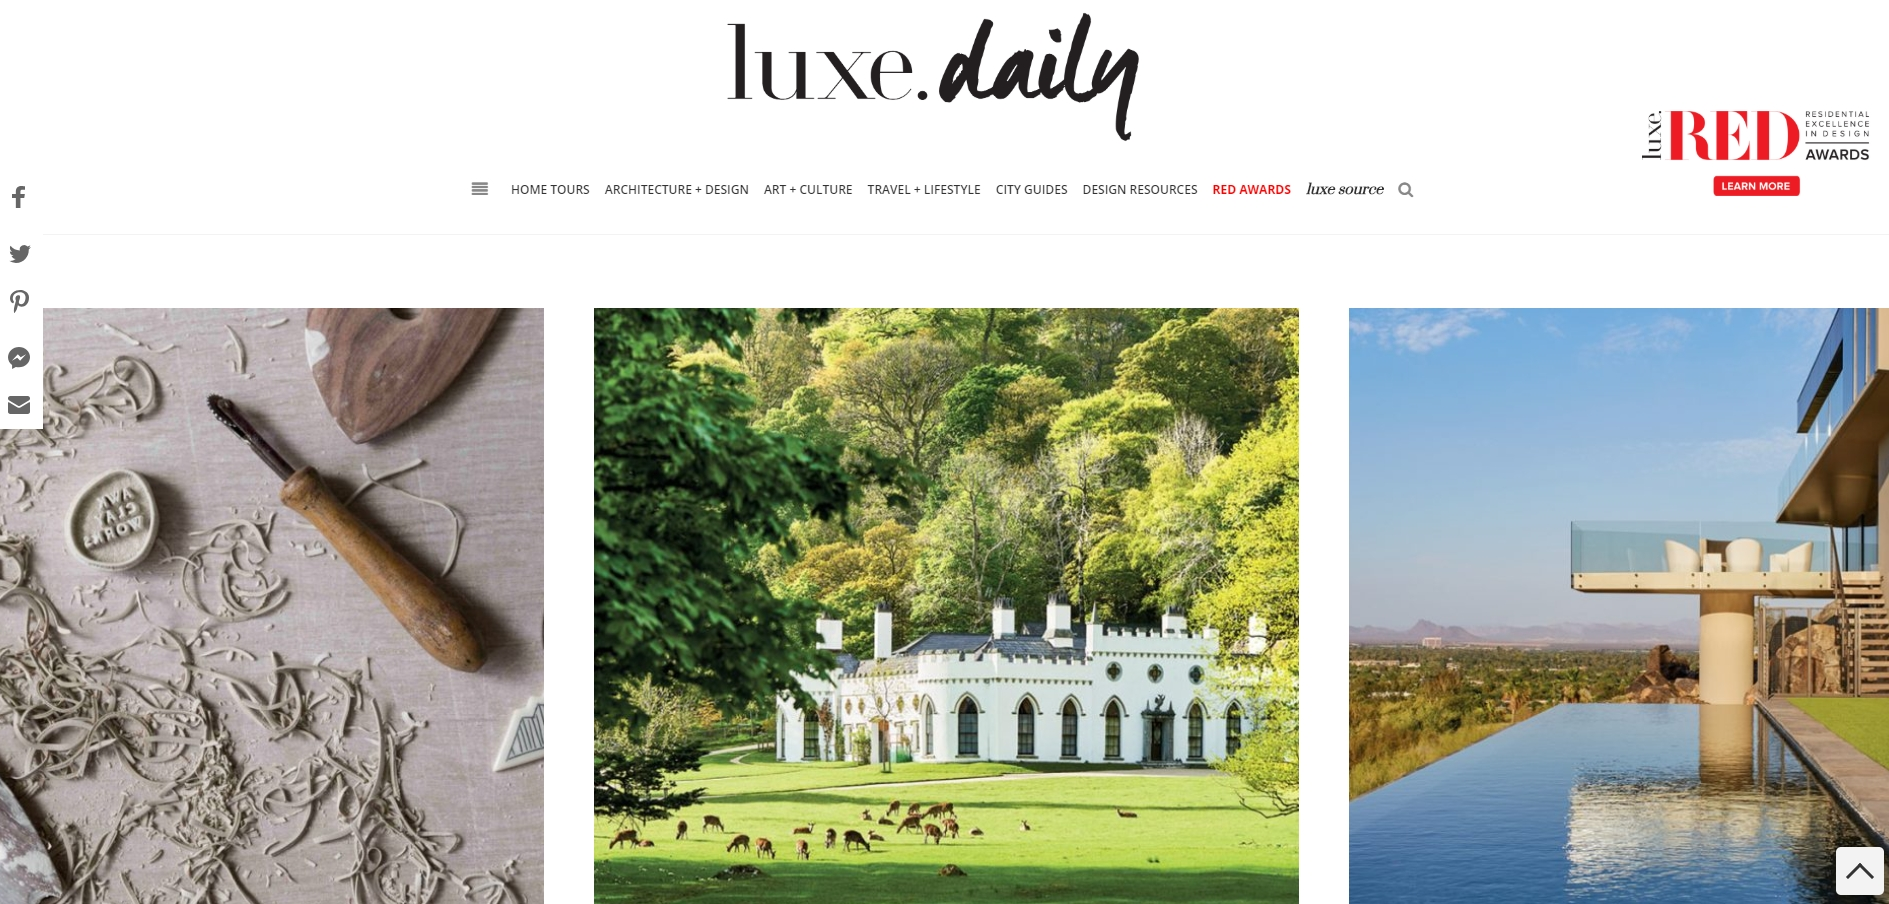 Luxe Daily